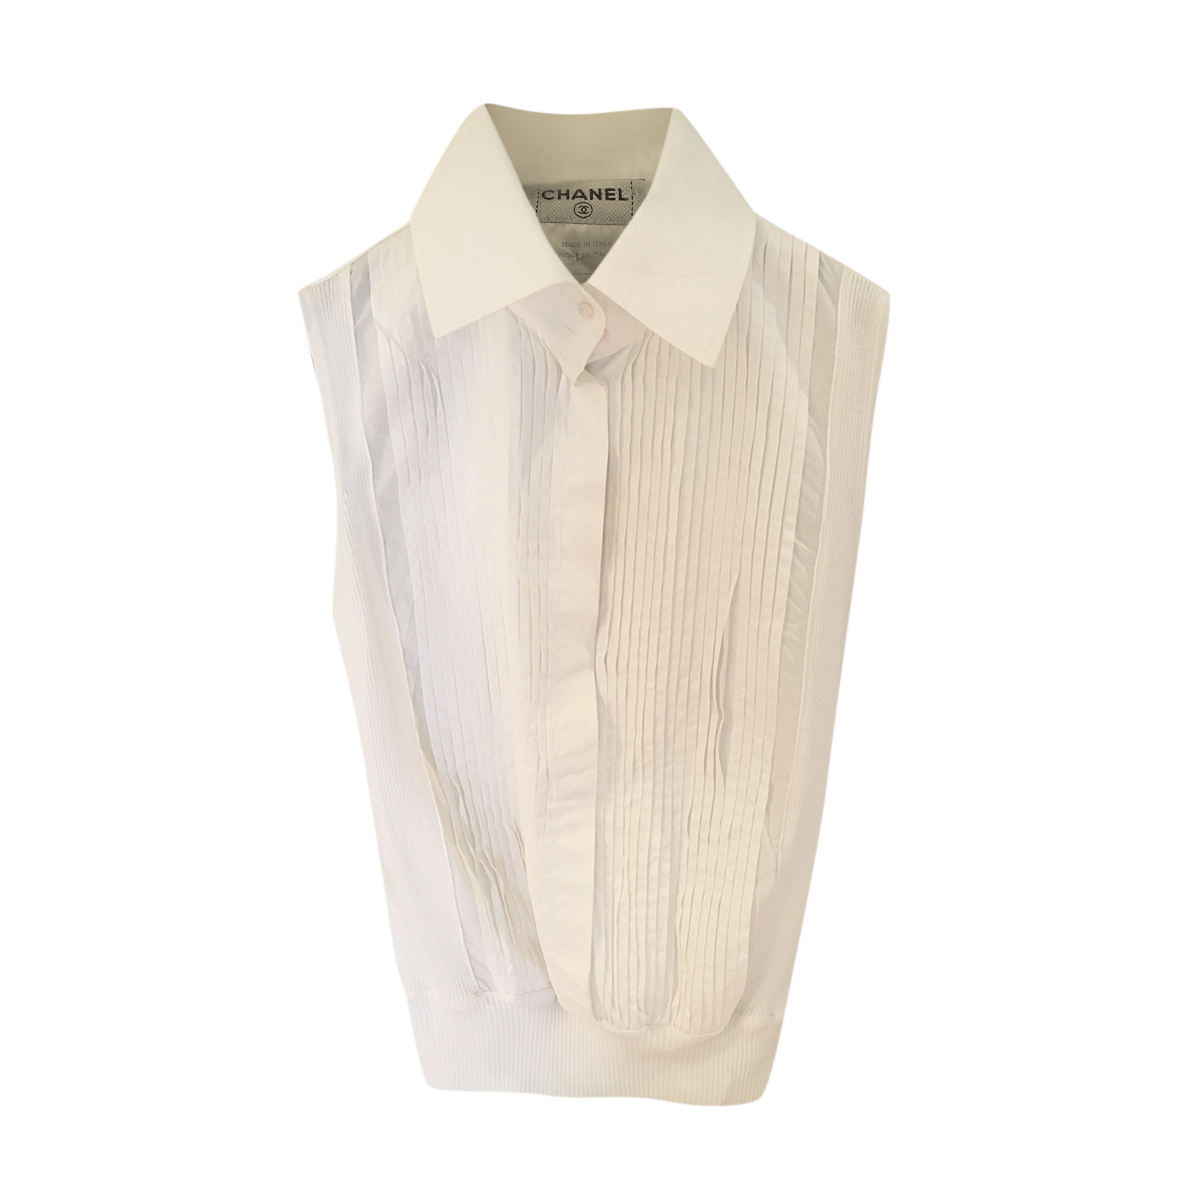 Chanel White Pleated Cotton Sleeveless Top